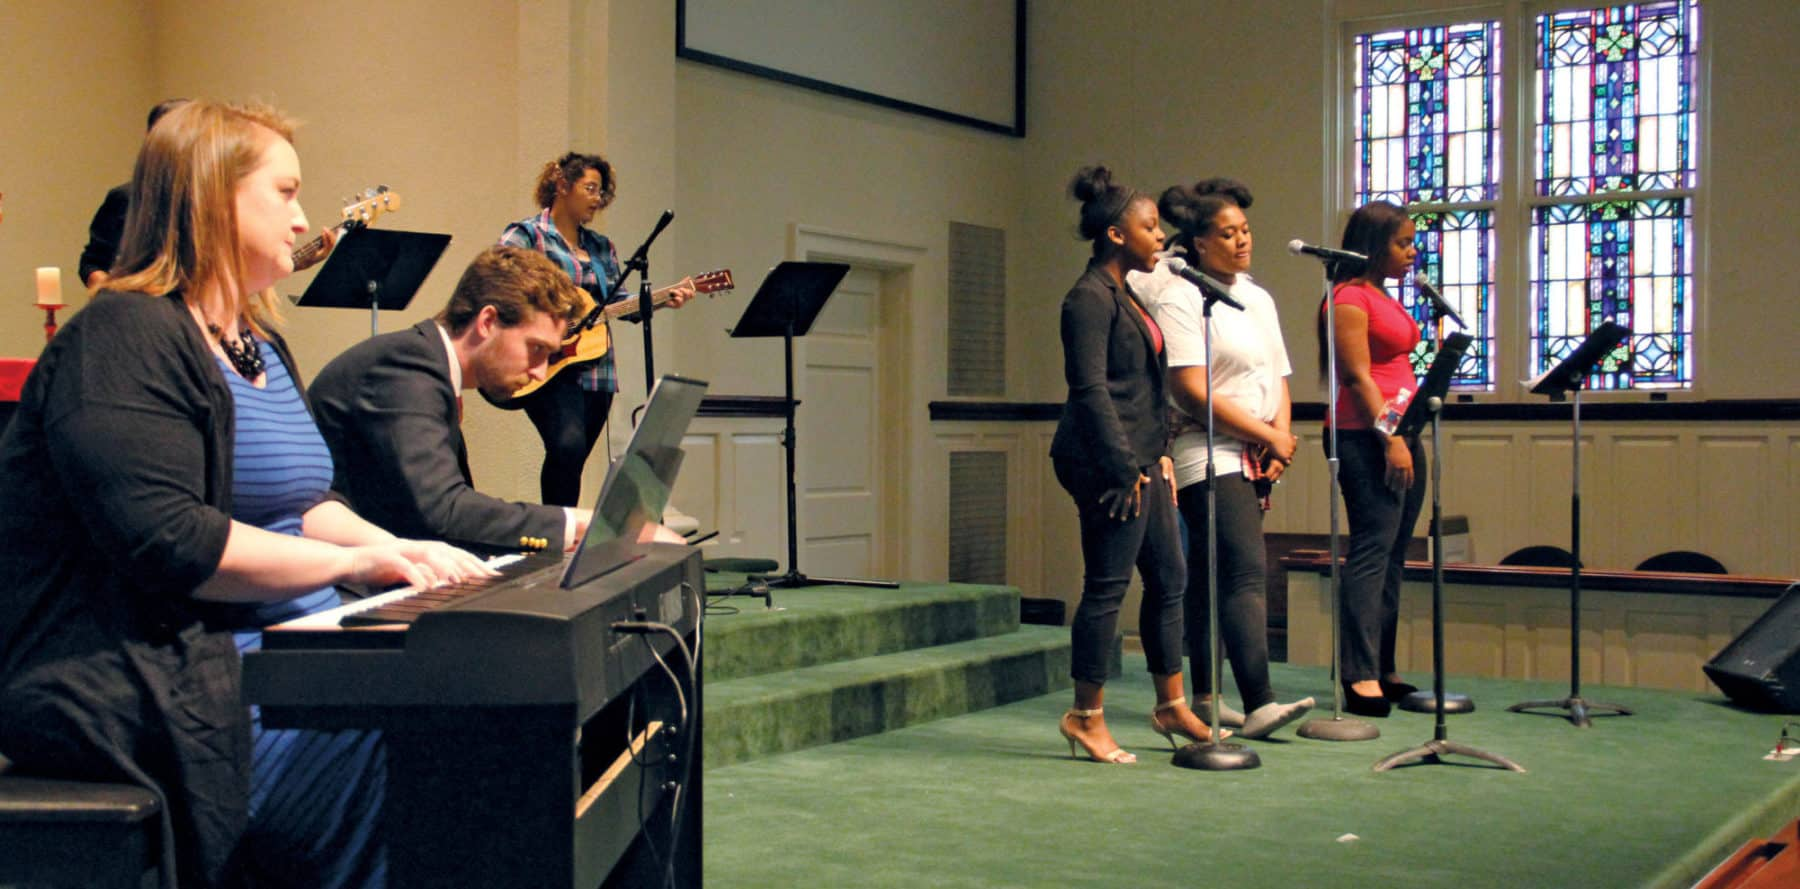 MCH Students Leading Worship